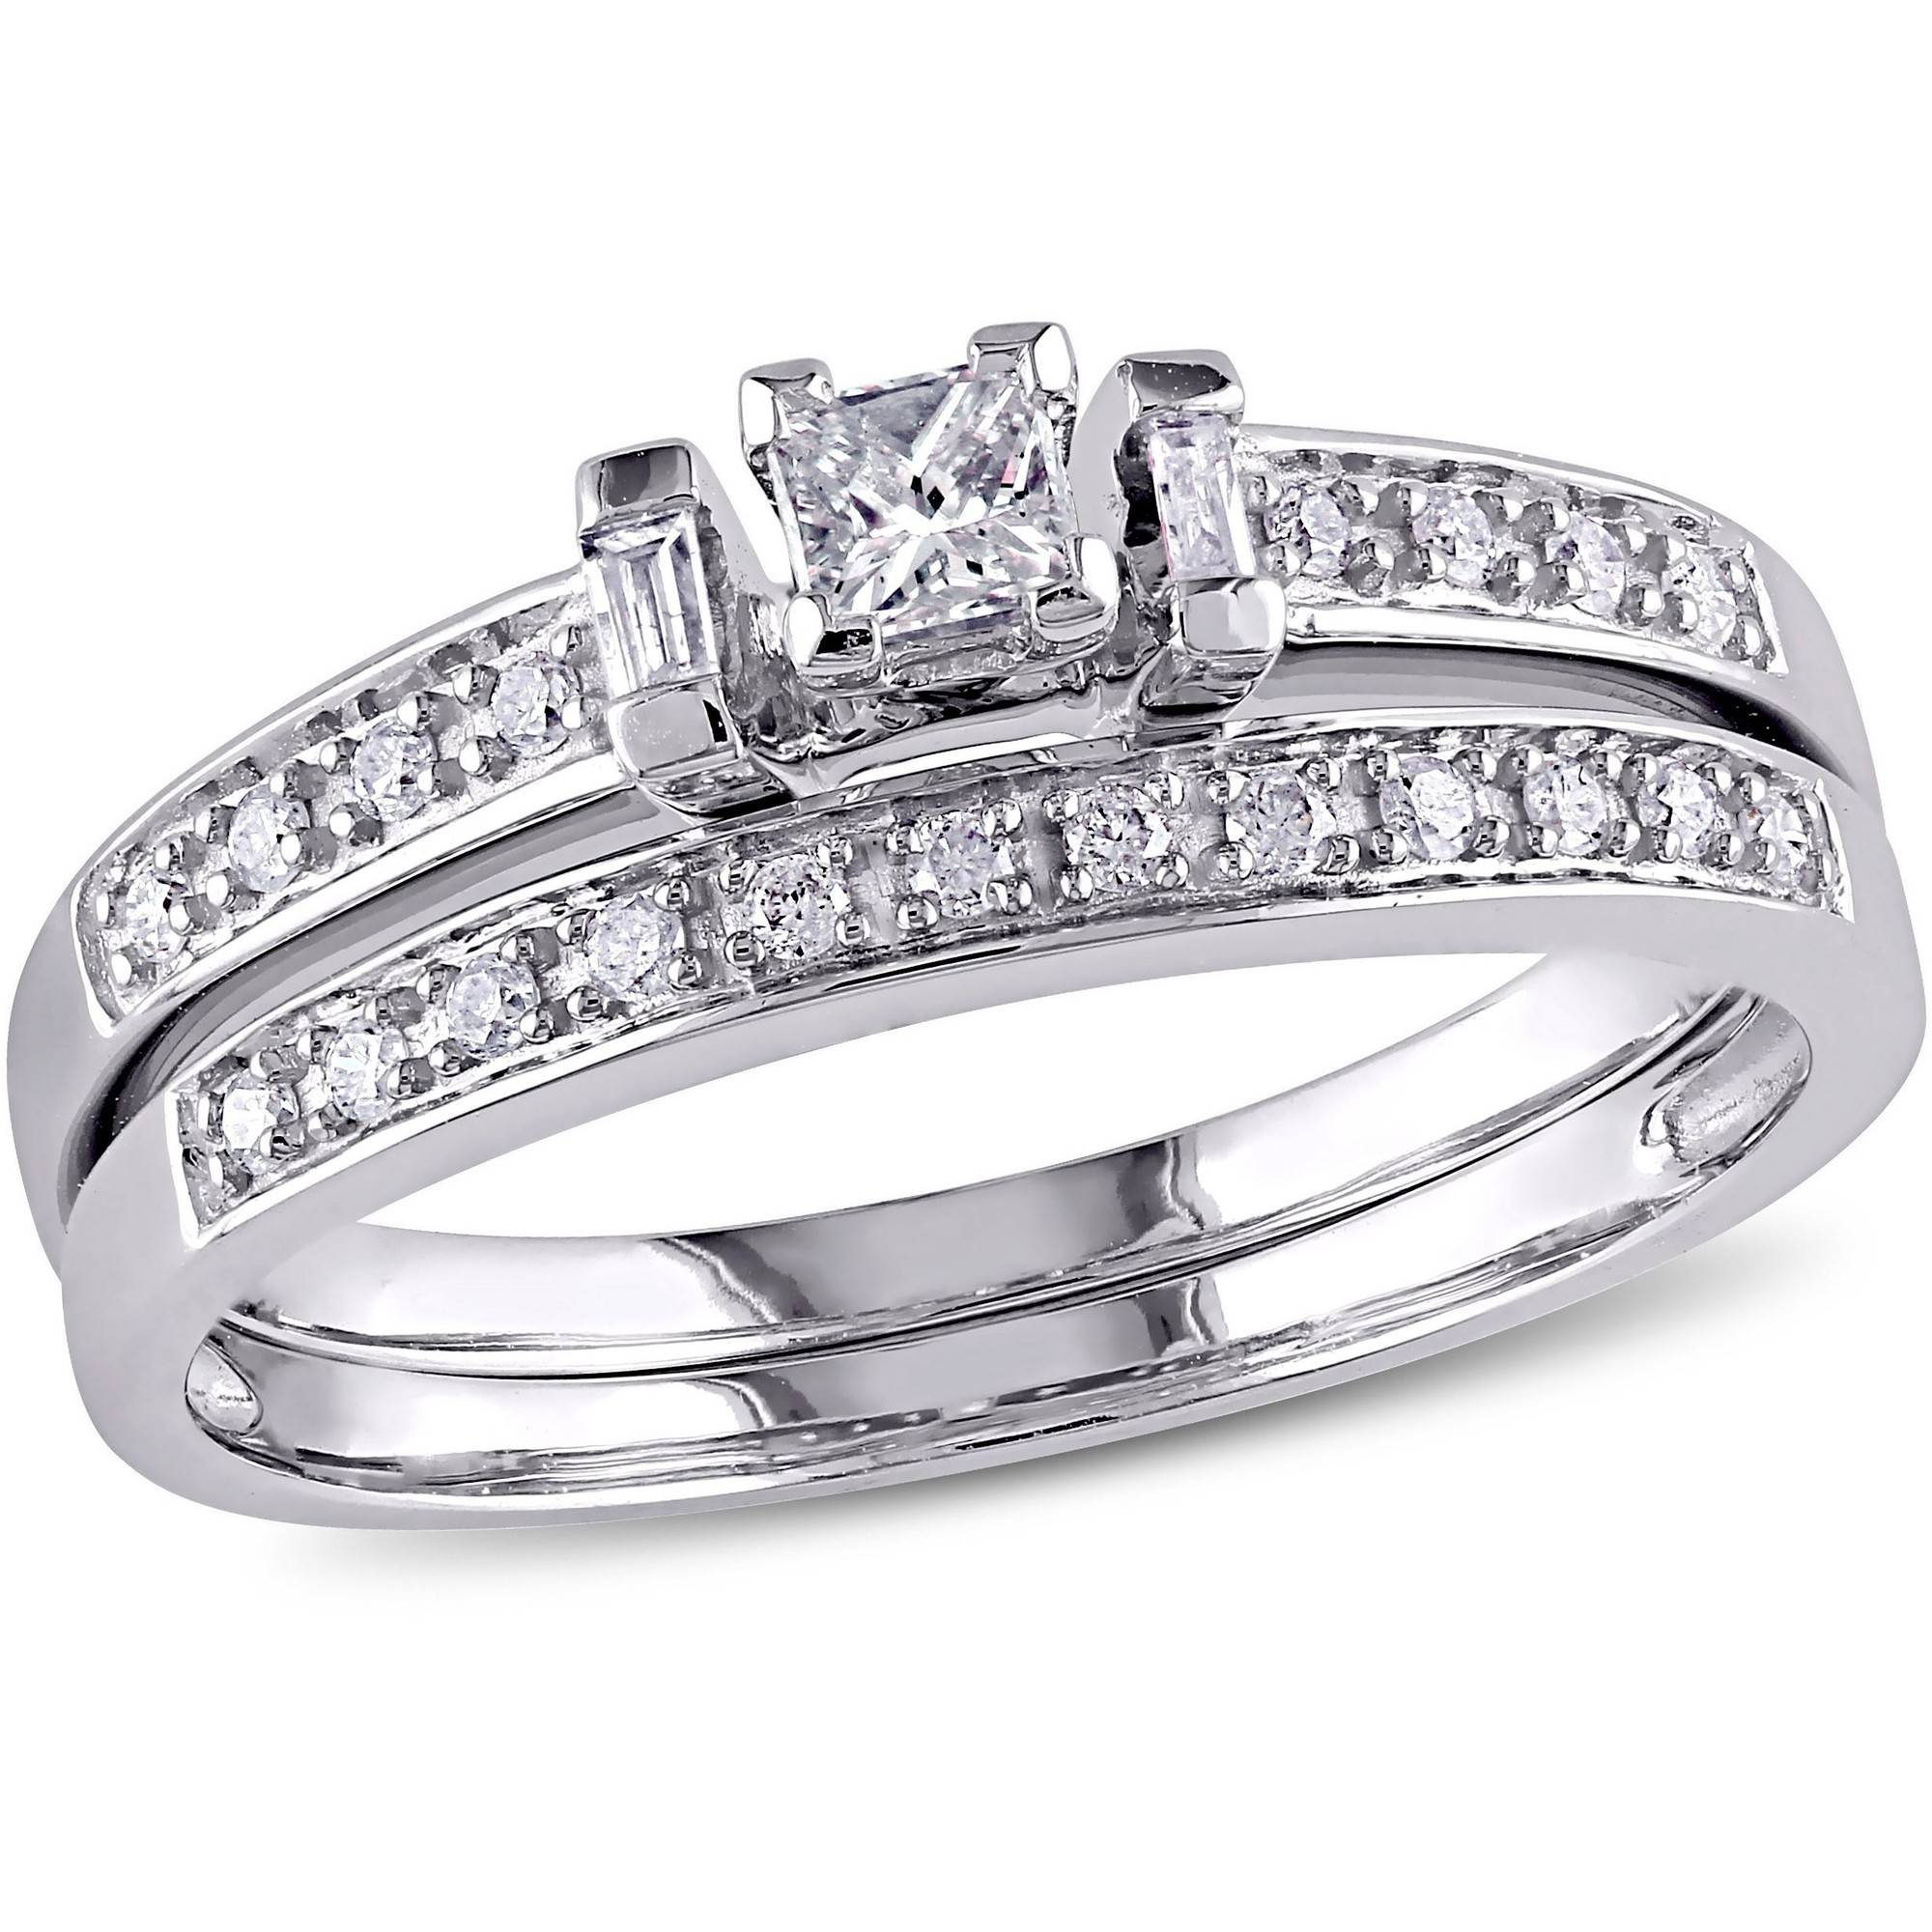 Miabella 13 Carat TW Princess Baguette and RoundCut Diamond